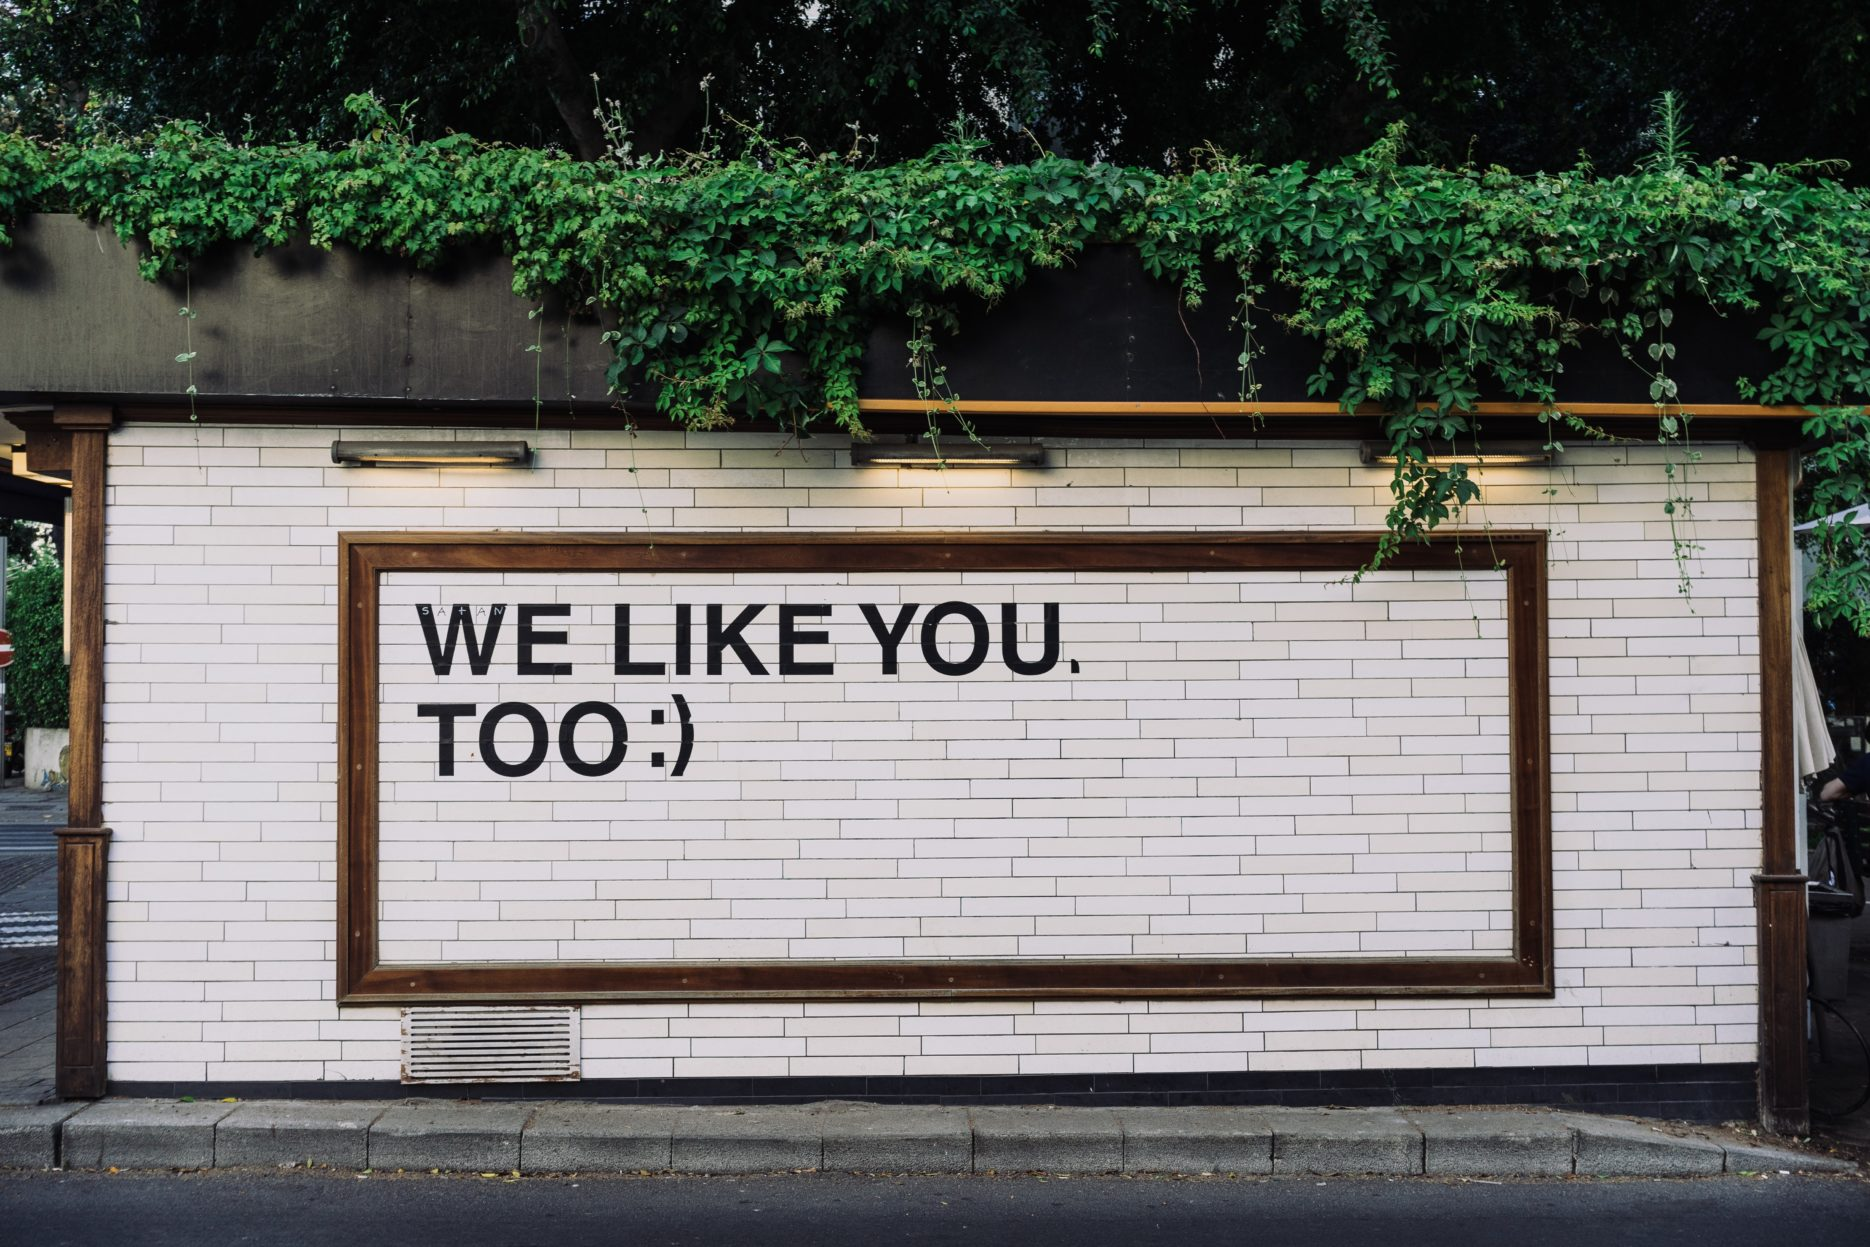 """We Like You Too :)"" in black text on a white brick wall."